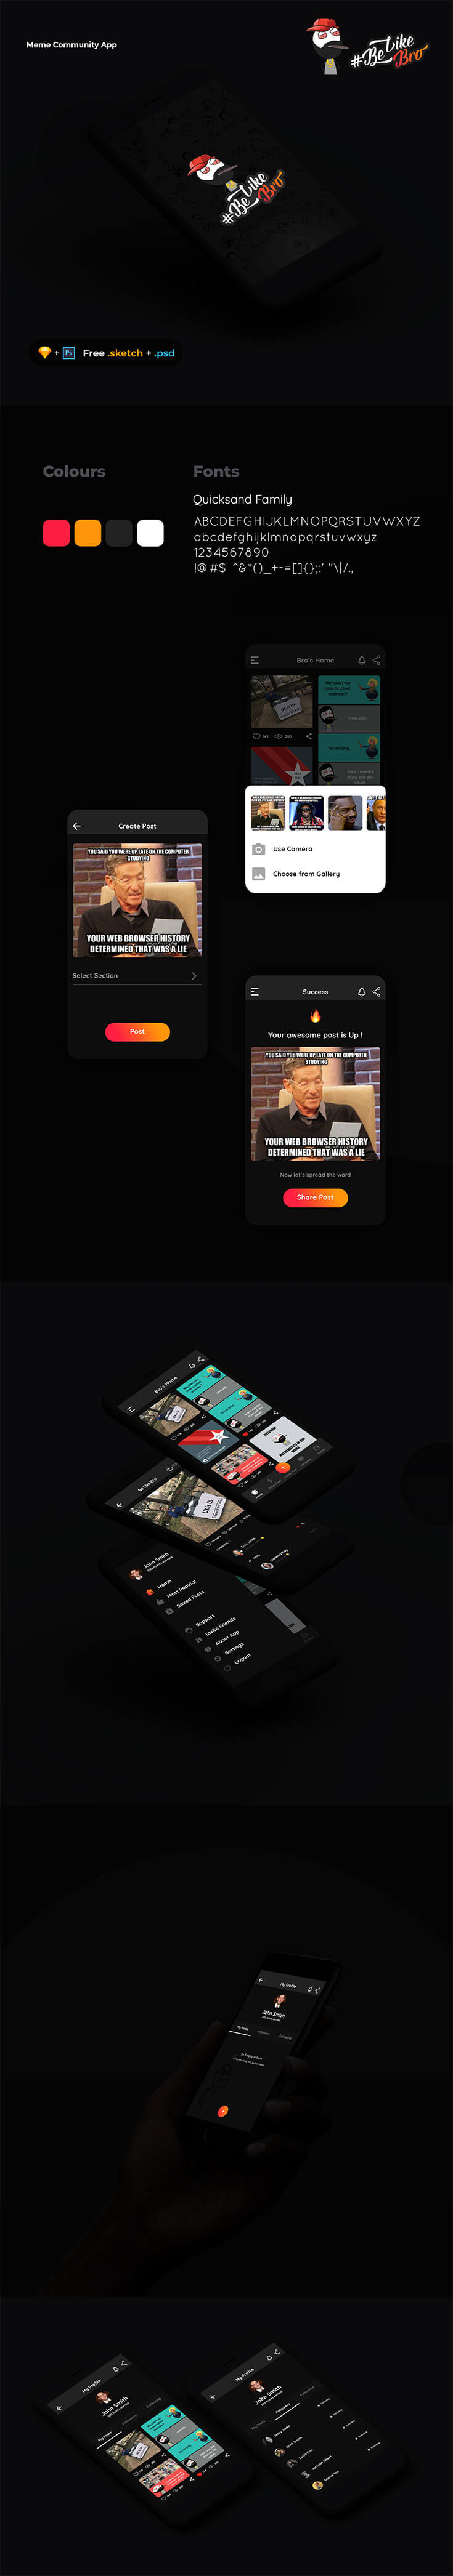 Free #Meme Community #App #Template is a clean meme app coming from Nihal Graphics. It's available in PSD file format, so you can fully edit and you can resize or replace them easily. You can use this to showcase your personal or forthcoming projects.